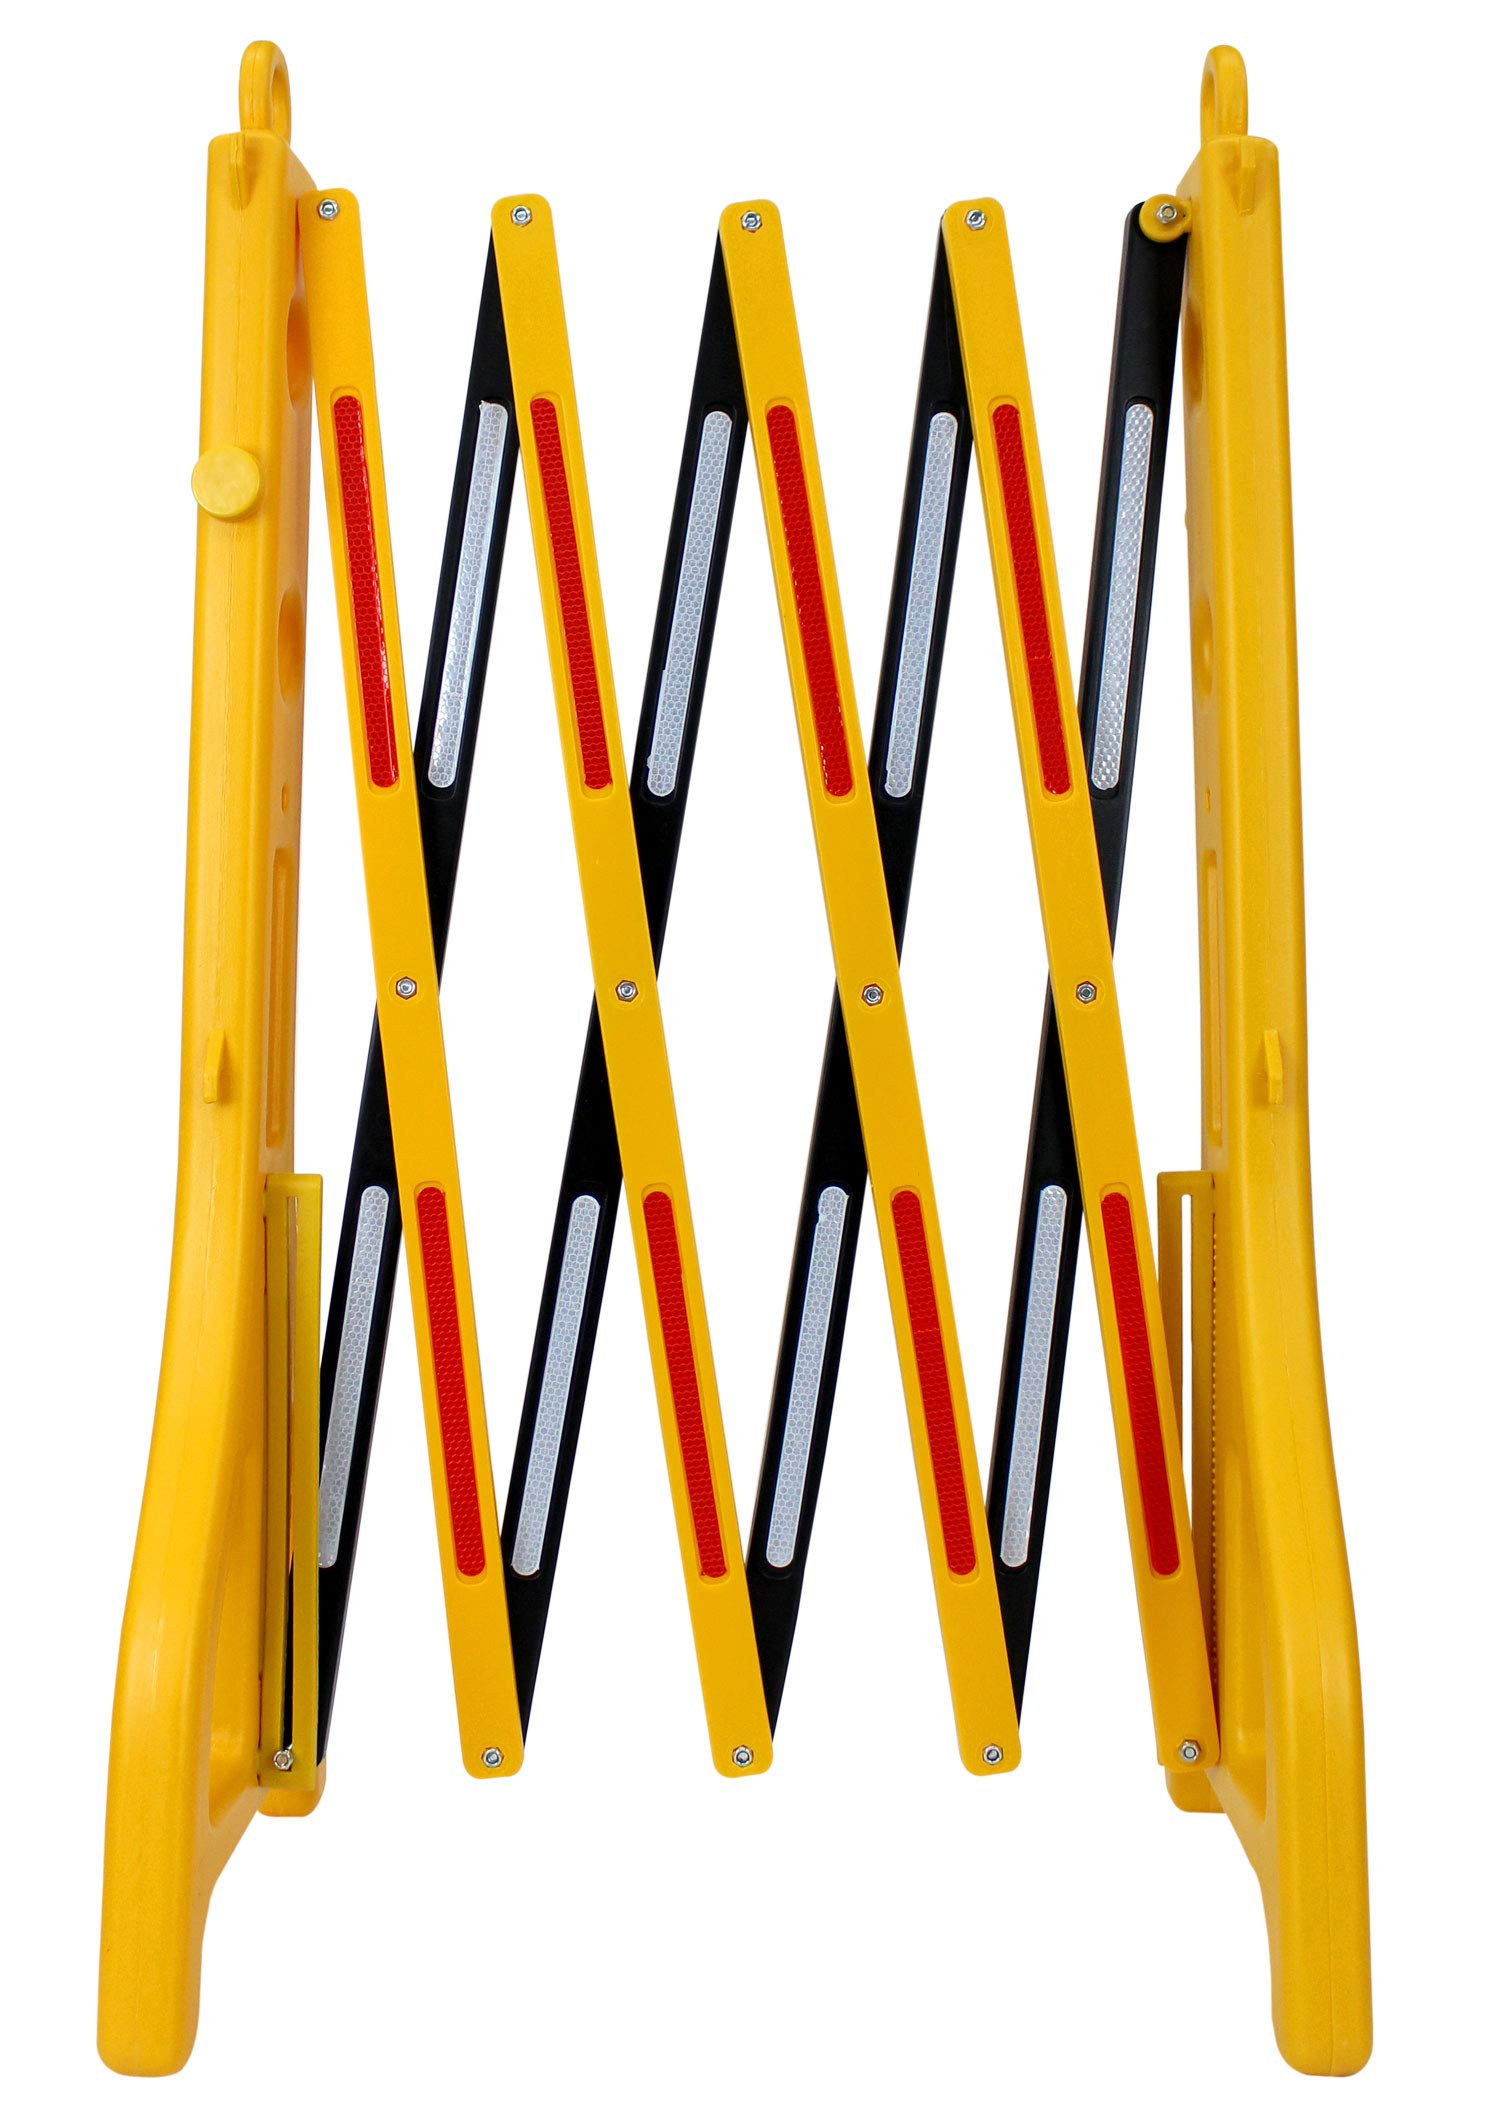 RK Safety RK-EXB1 Expandable Barricade System,Safety Barrier Gate,38'' Tall - 8' 2'' Max Width